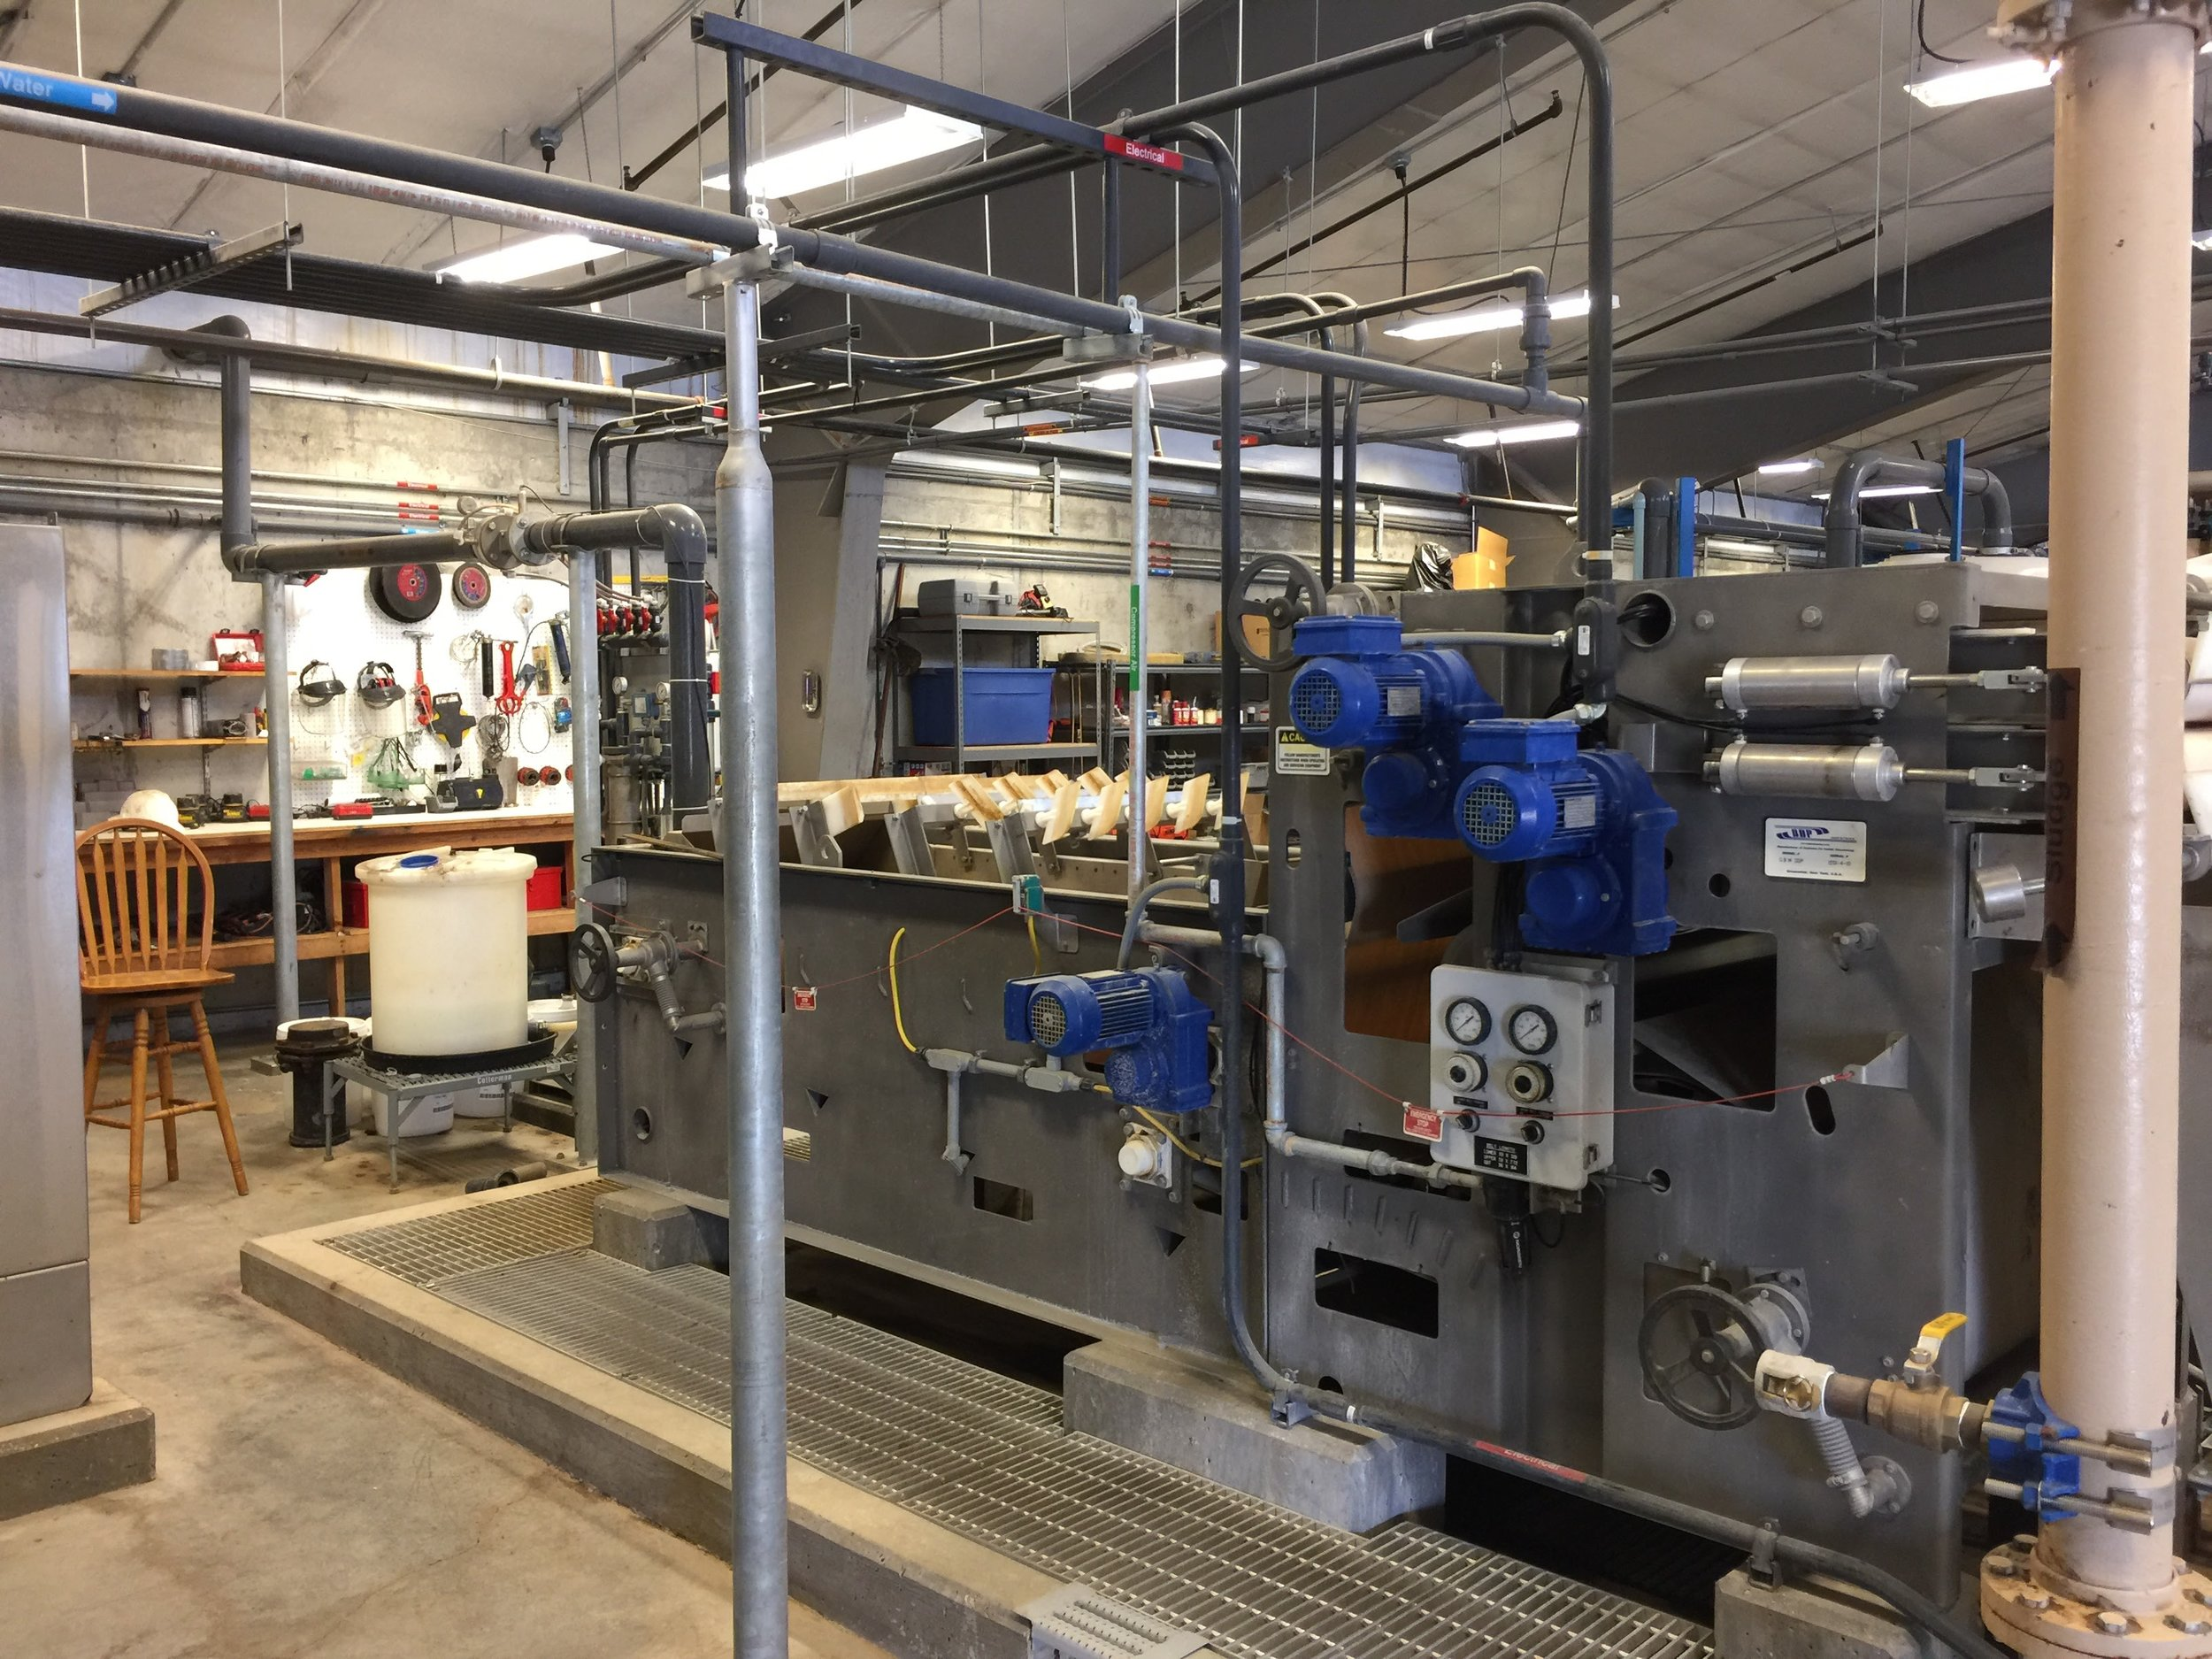 13. Belt filter press - Used to remove the most of the water from the sludge in the backwash tank prior to disposing.